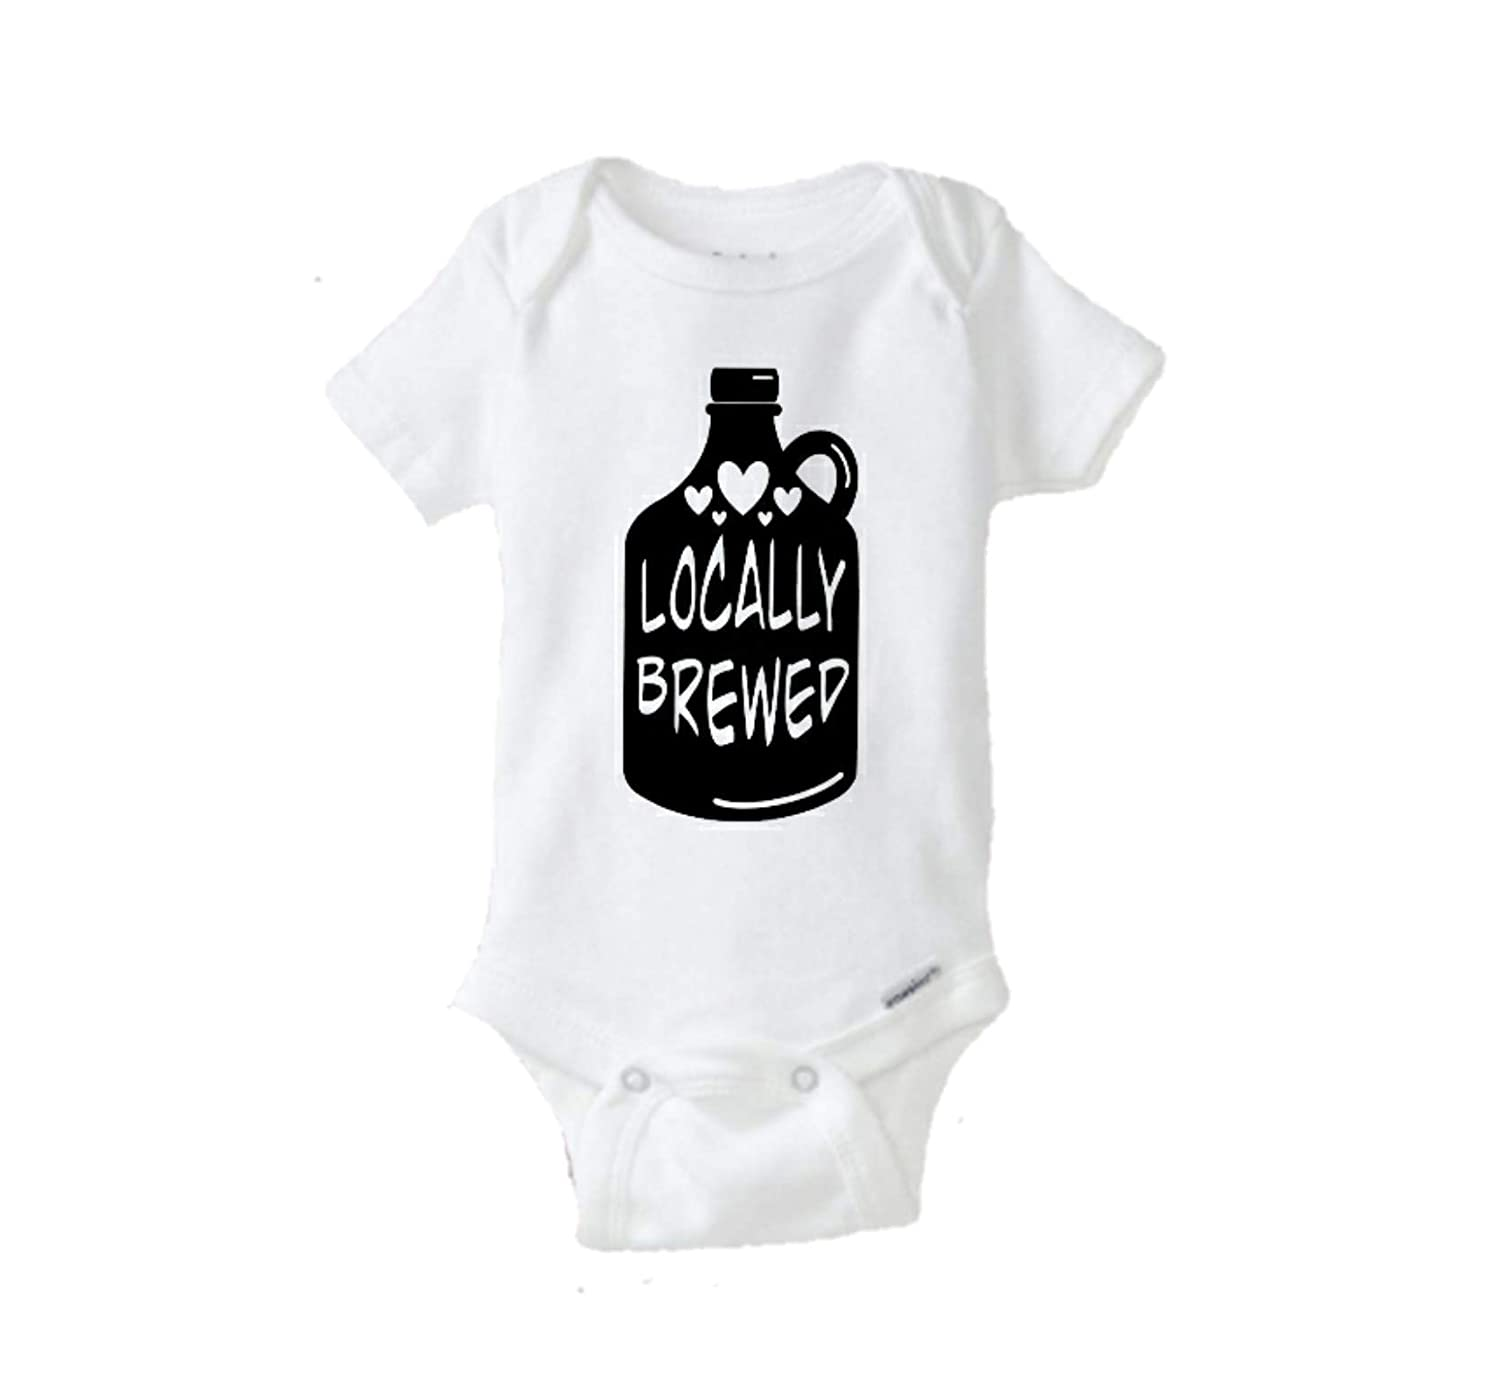 Locally brewed baby bodysuit gi We OFFer at cheap prices beer brewery Product